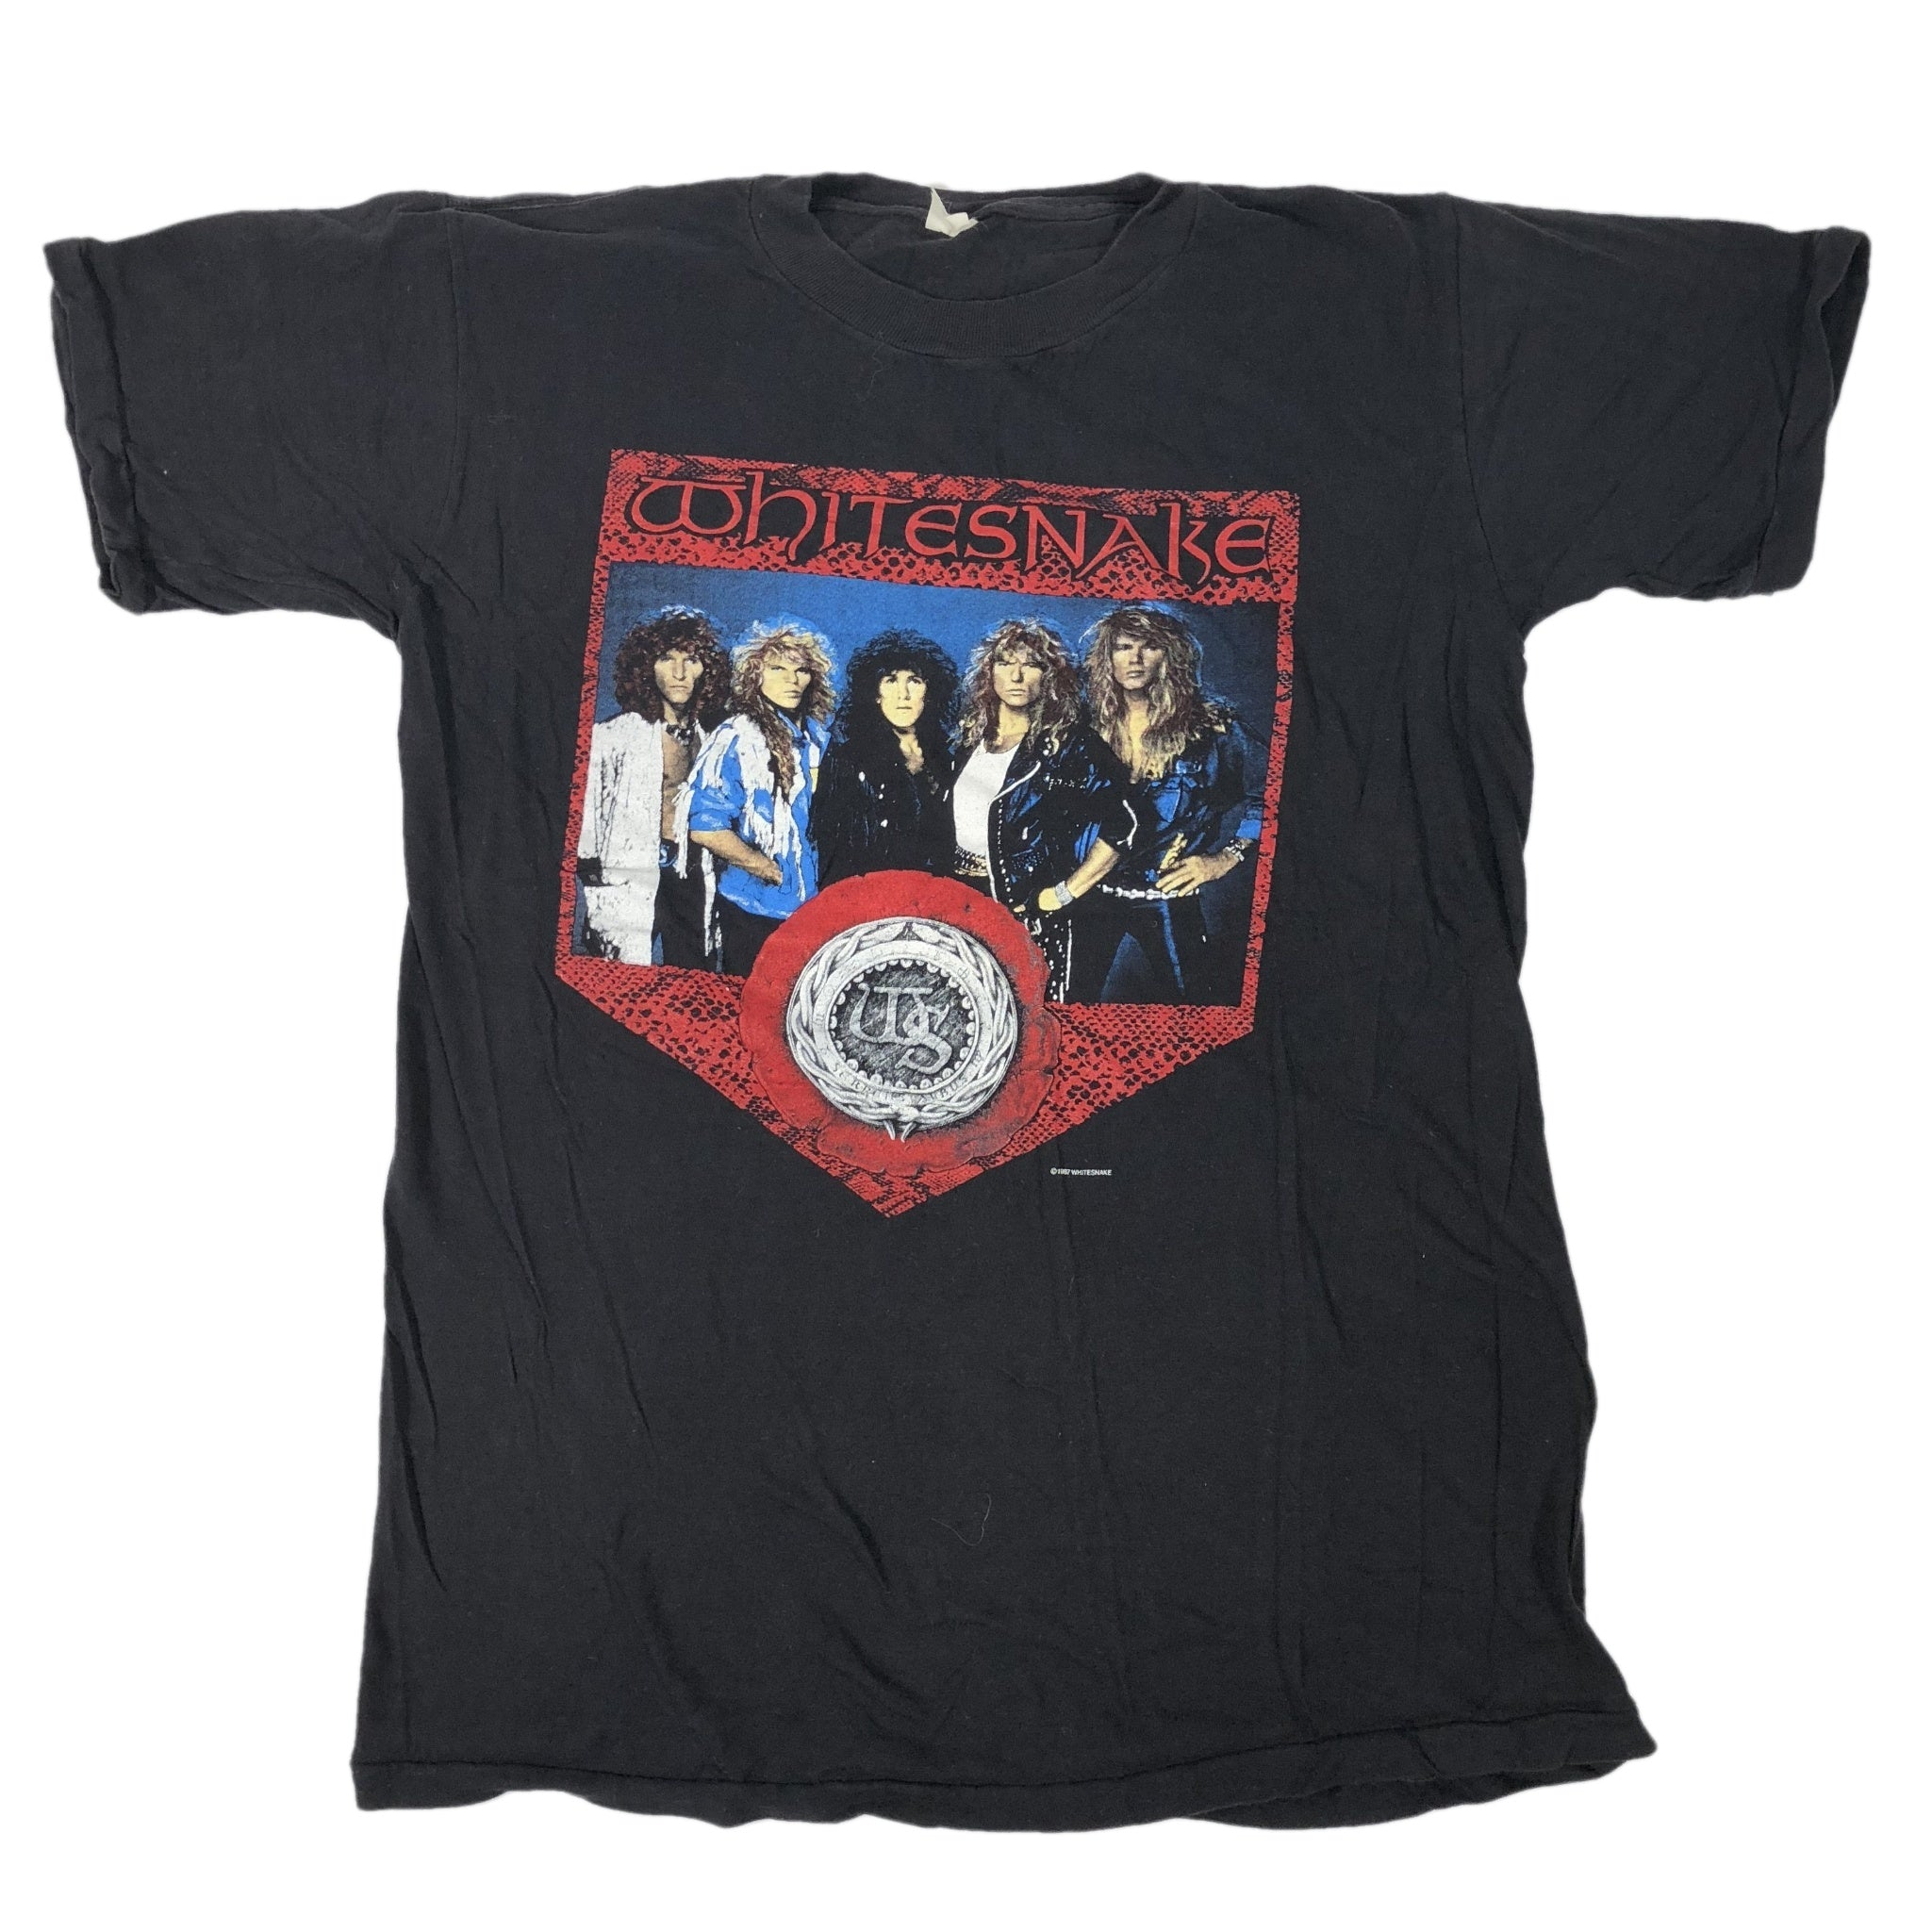 "Vintage Whitesnake ""North American Tour '87-88"" T-Shirt"